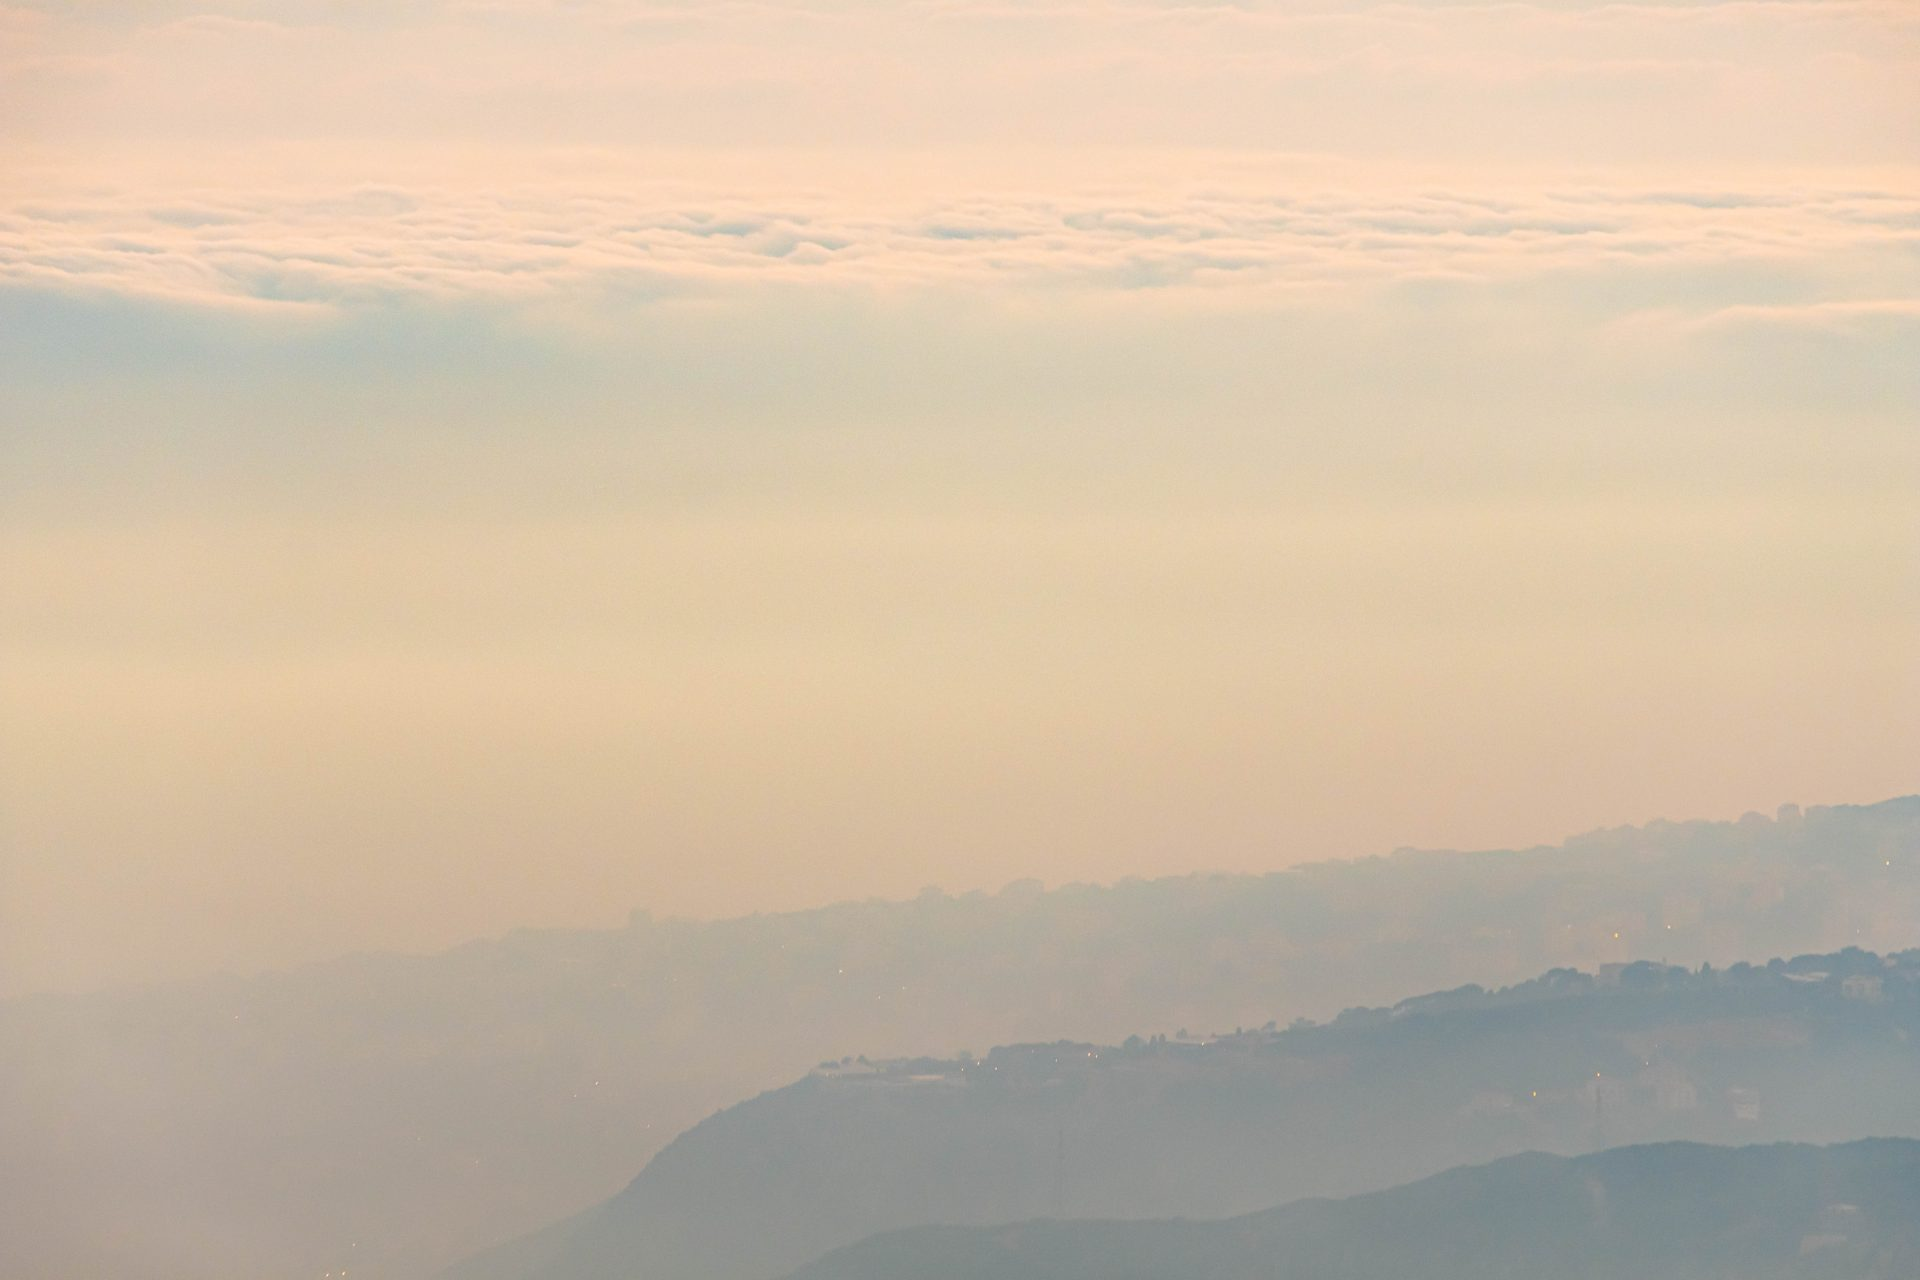 Panoramic view of lebanese mountains above the cloud photo by Jo Kassis